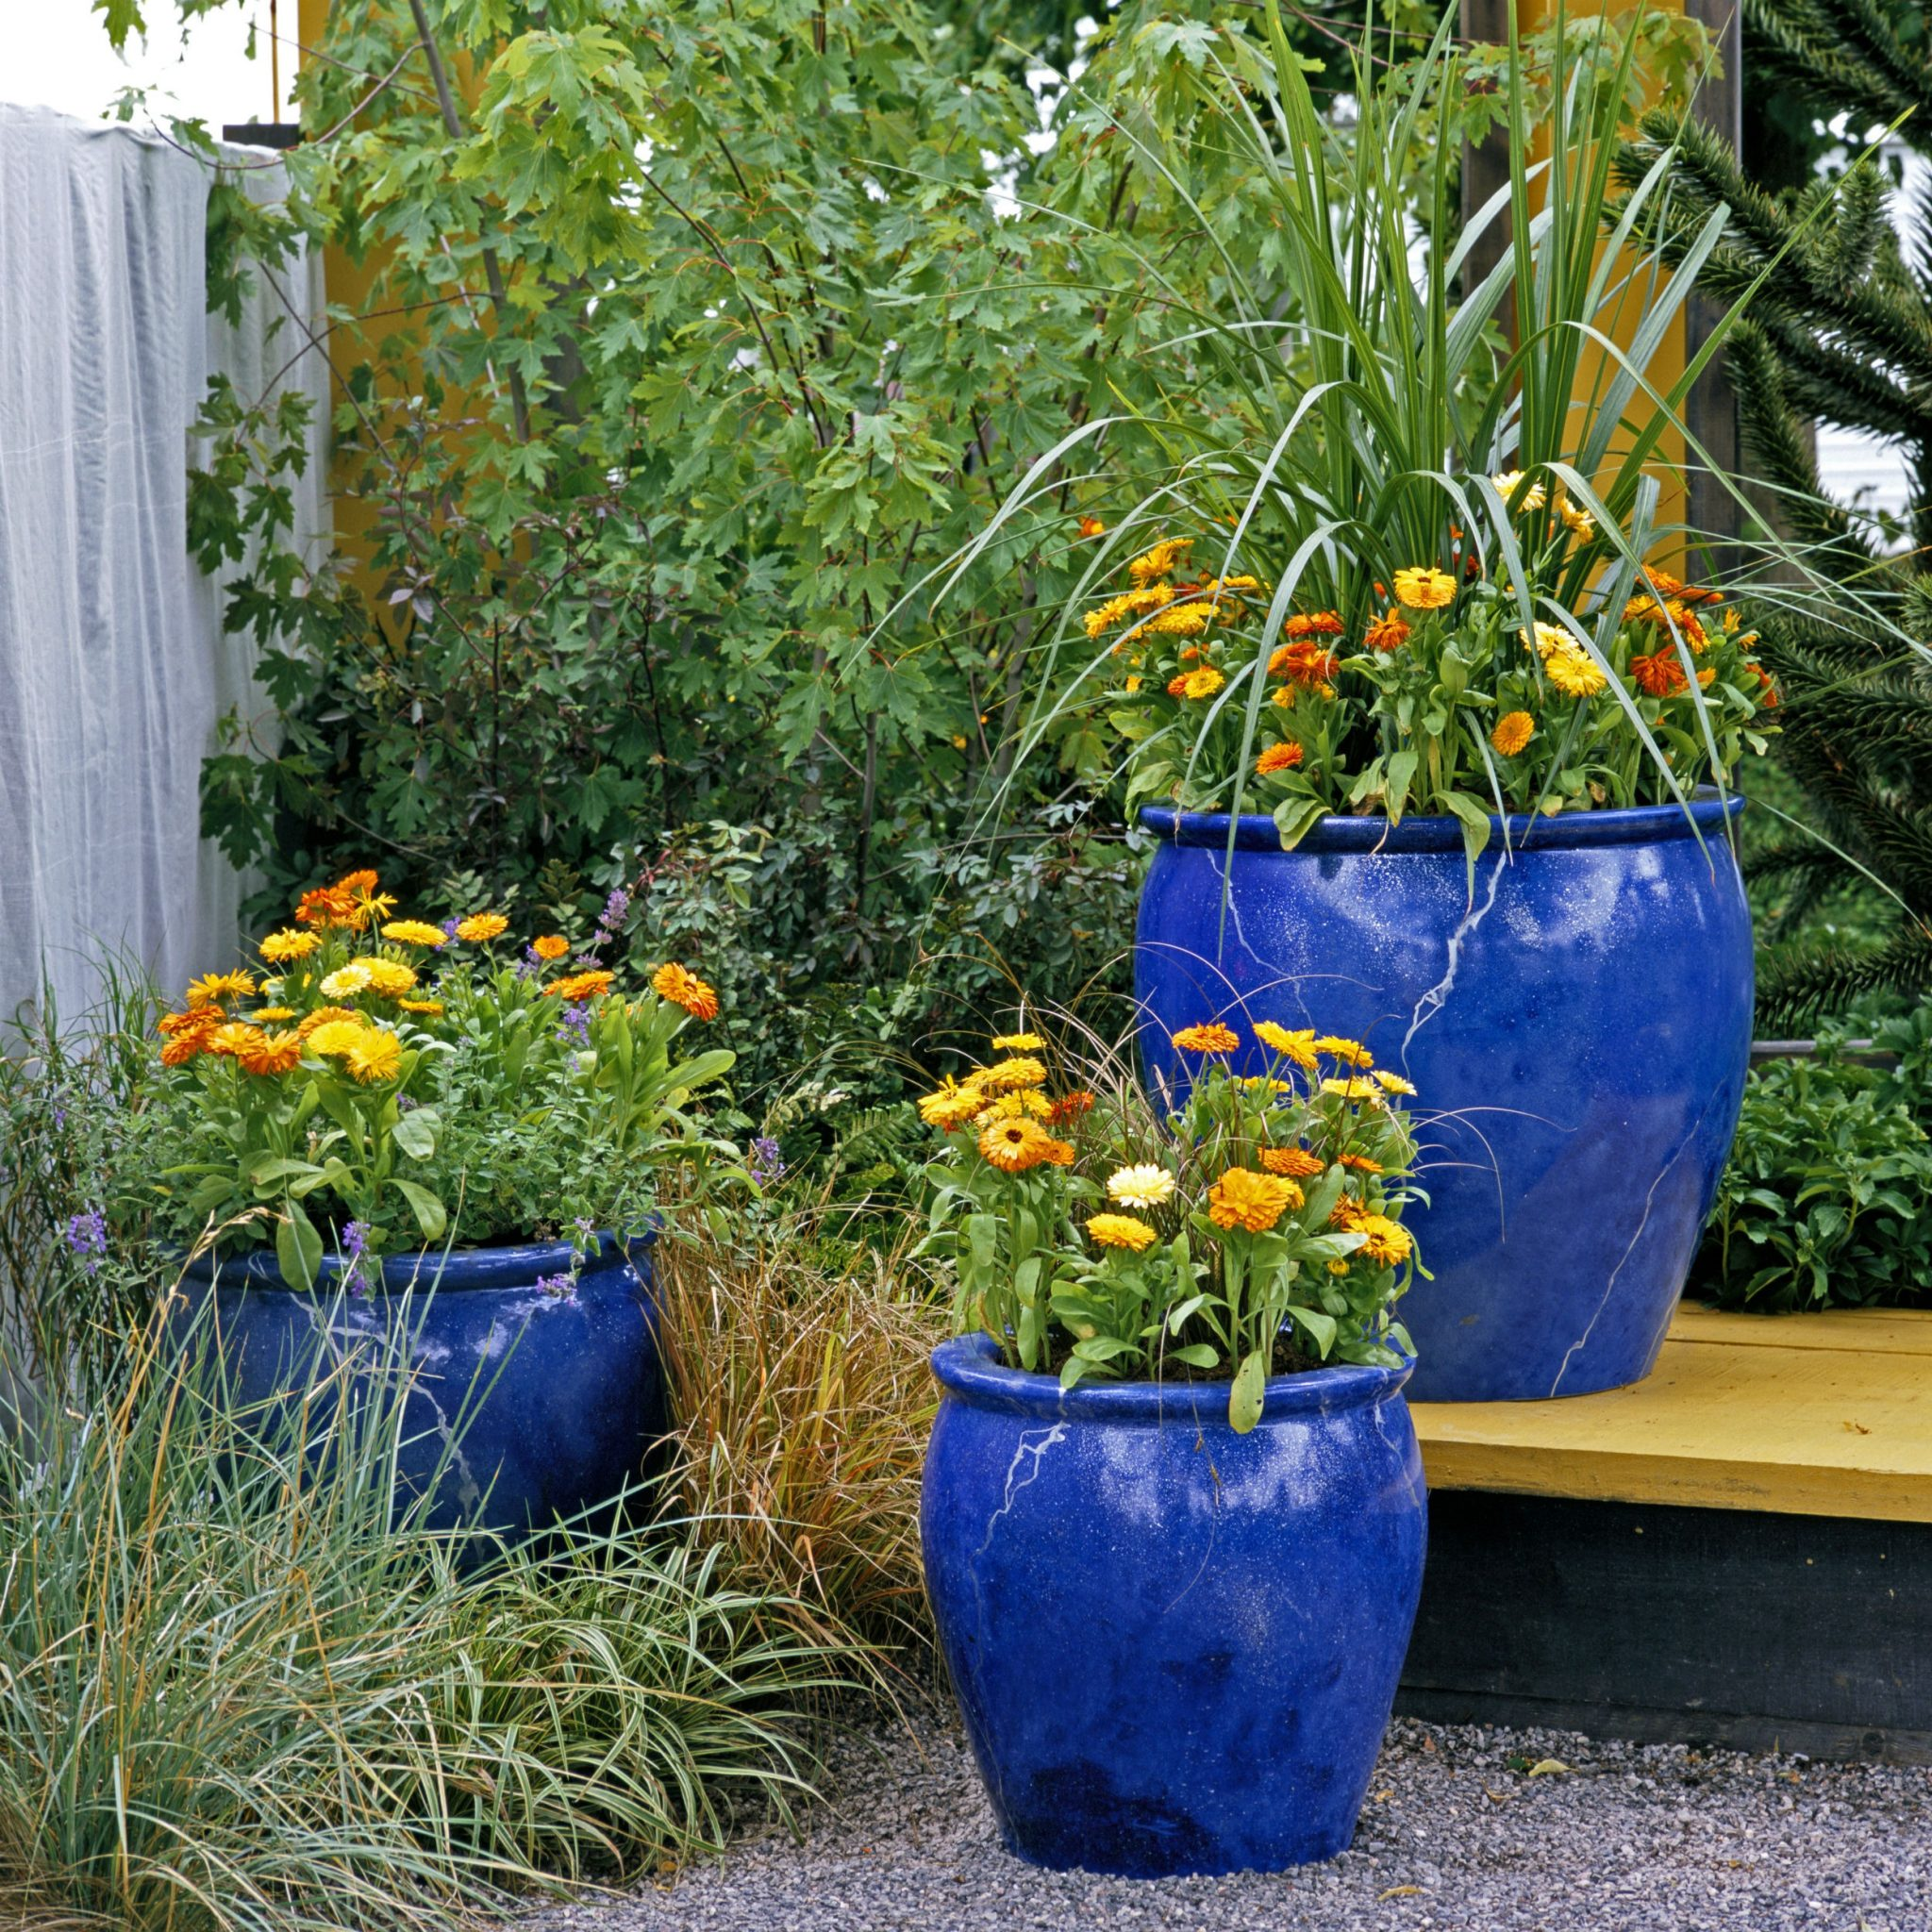 How to choose pots for a patio container garden pro tips - Container gardening basics ...